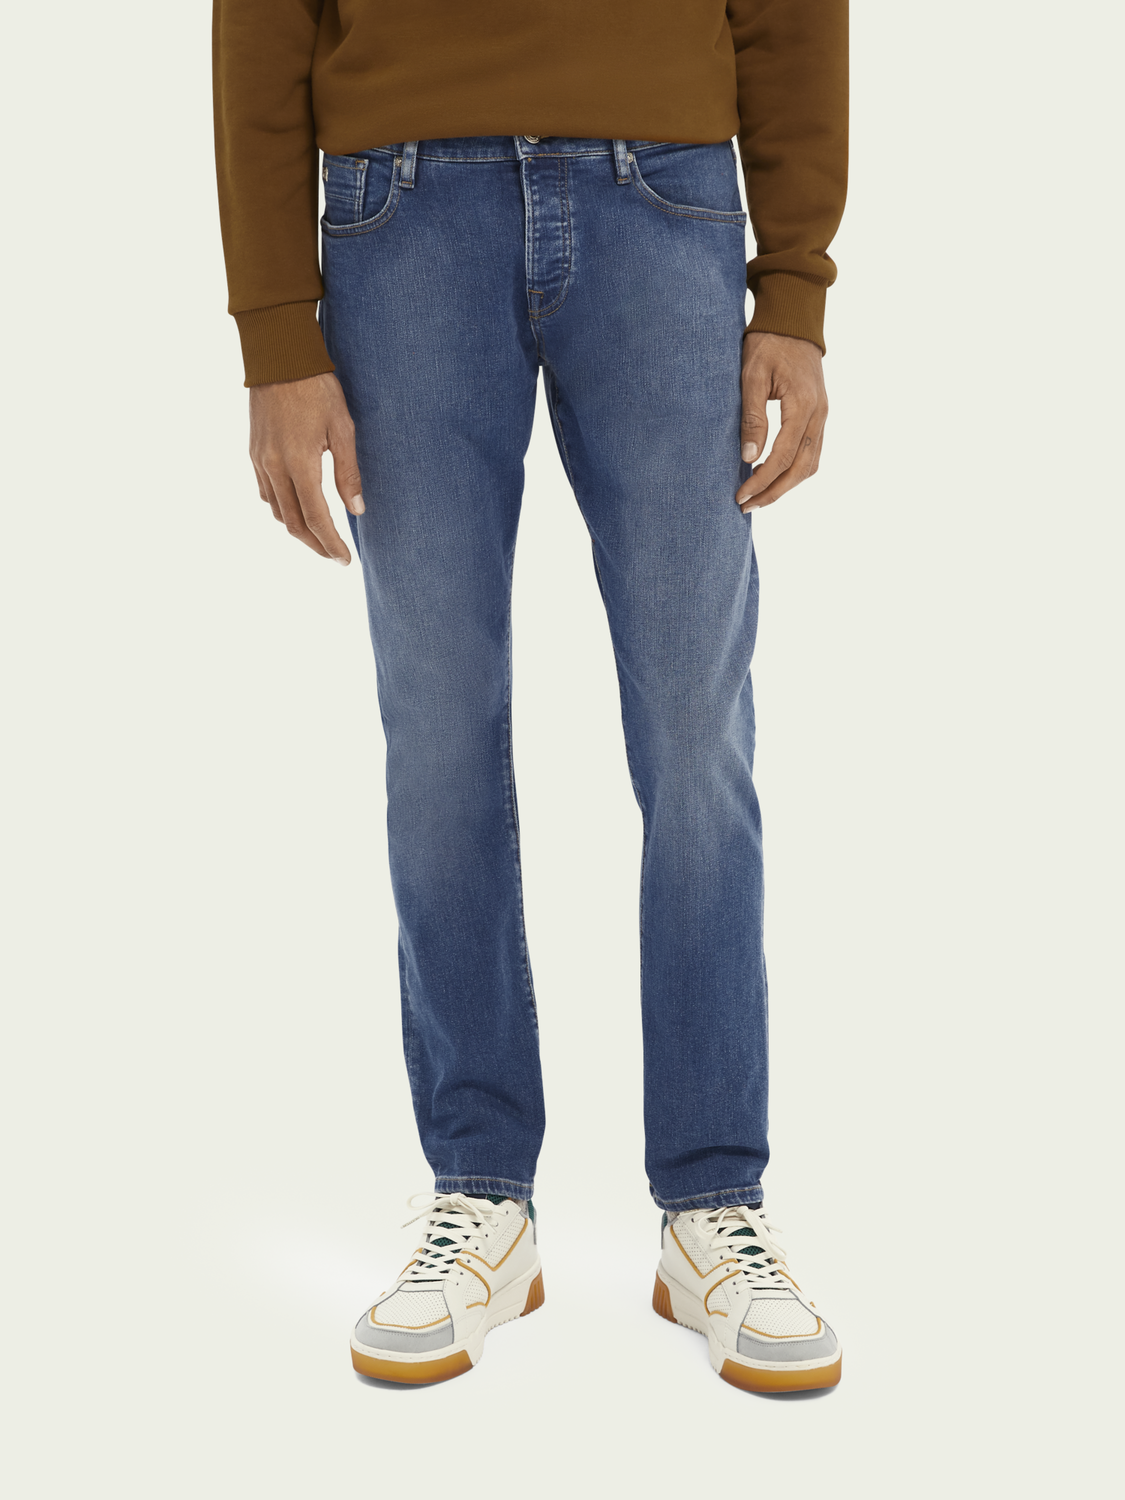 Herren Ralston Regular Slim Fit Jeans – Nouveau Blue